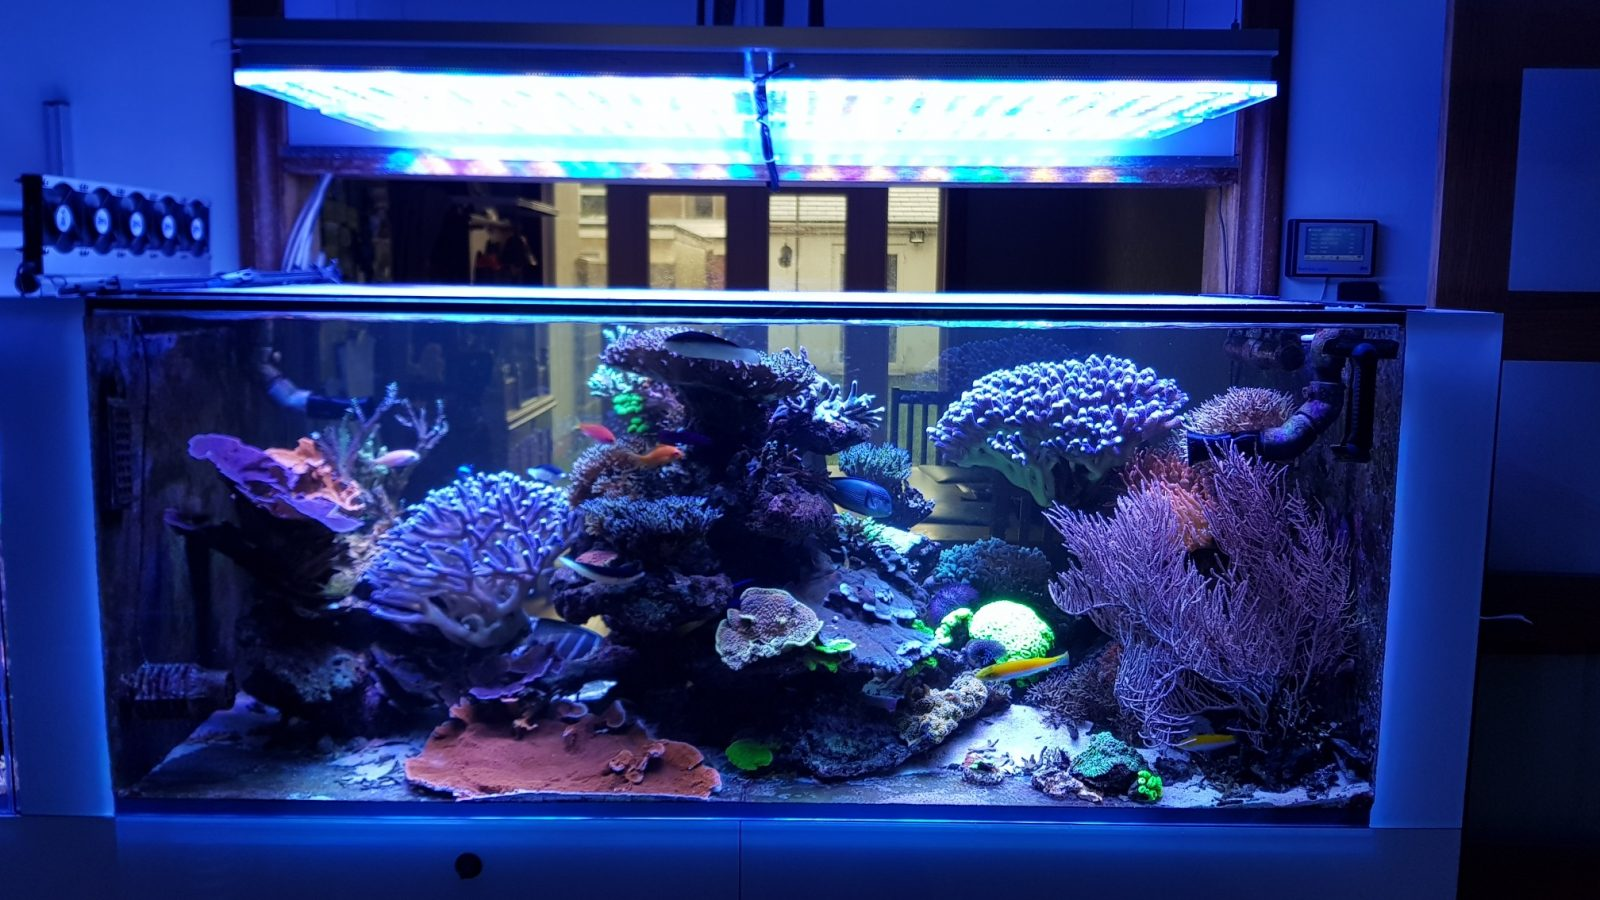 most_beautiful_reef_LED_ aquarium